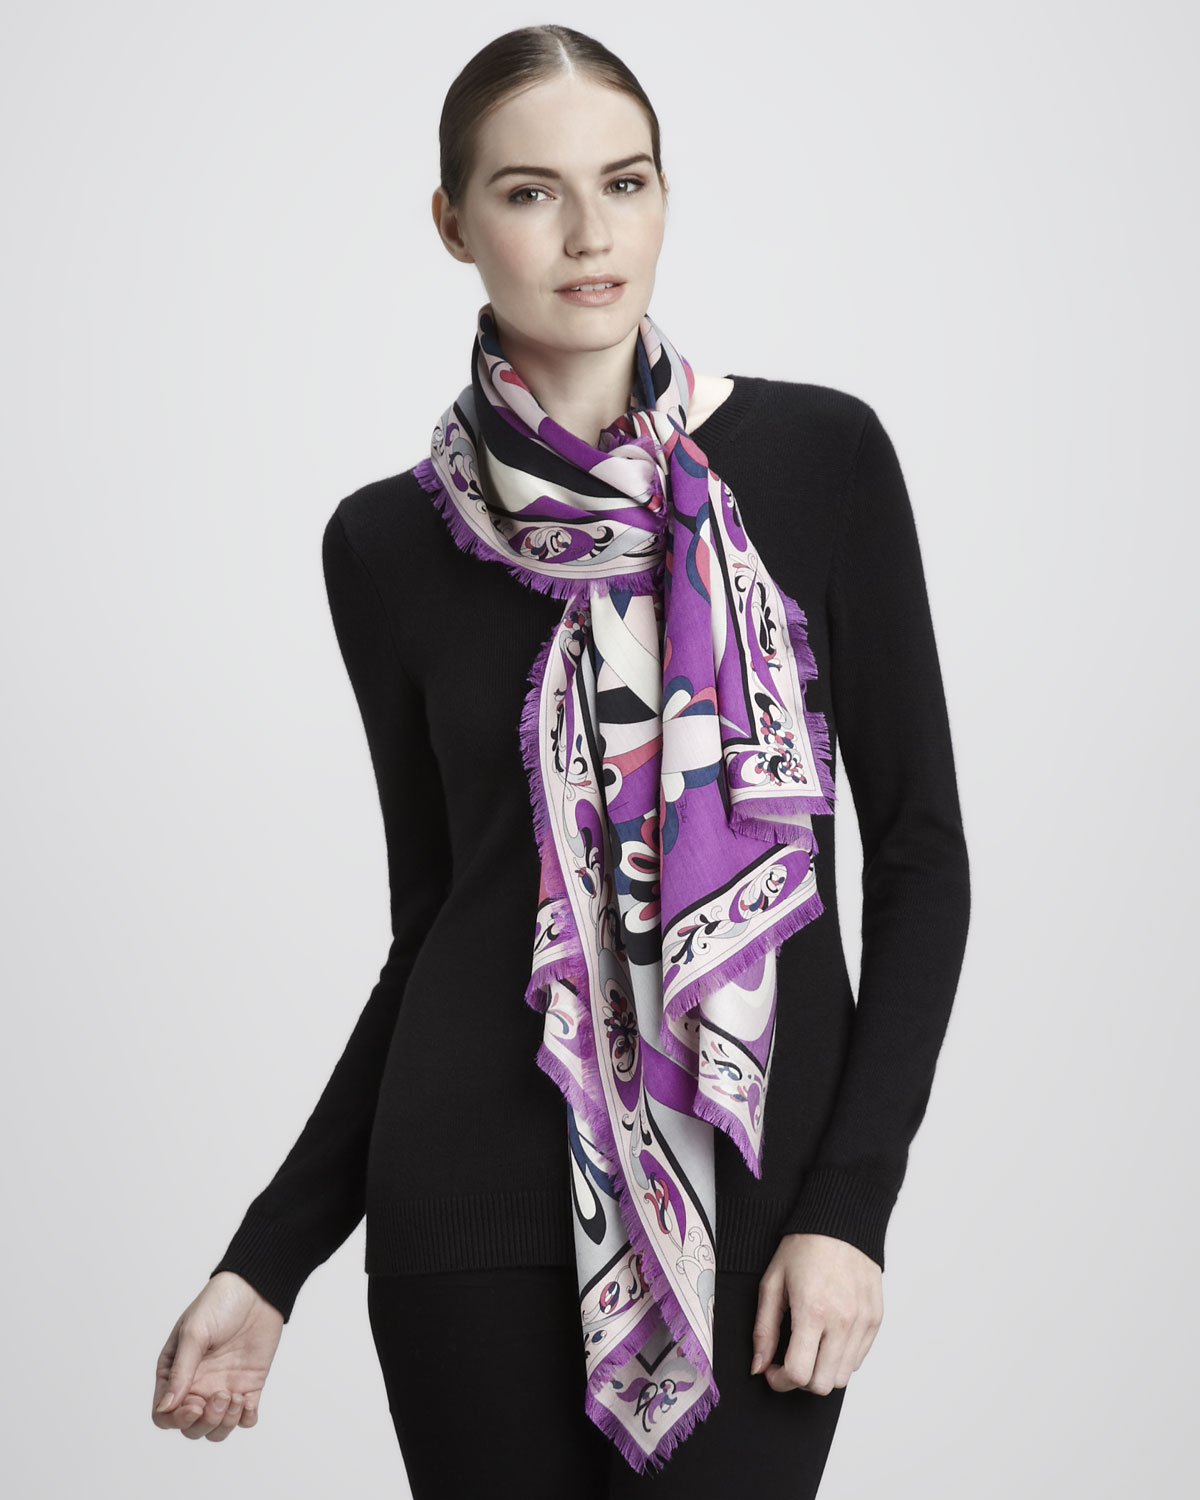 How to emilio wear pucci scarf